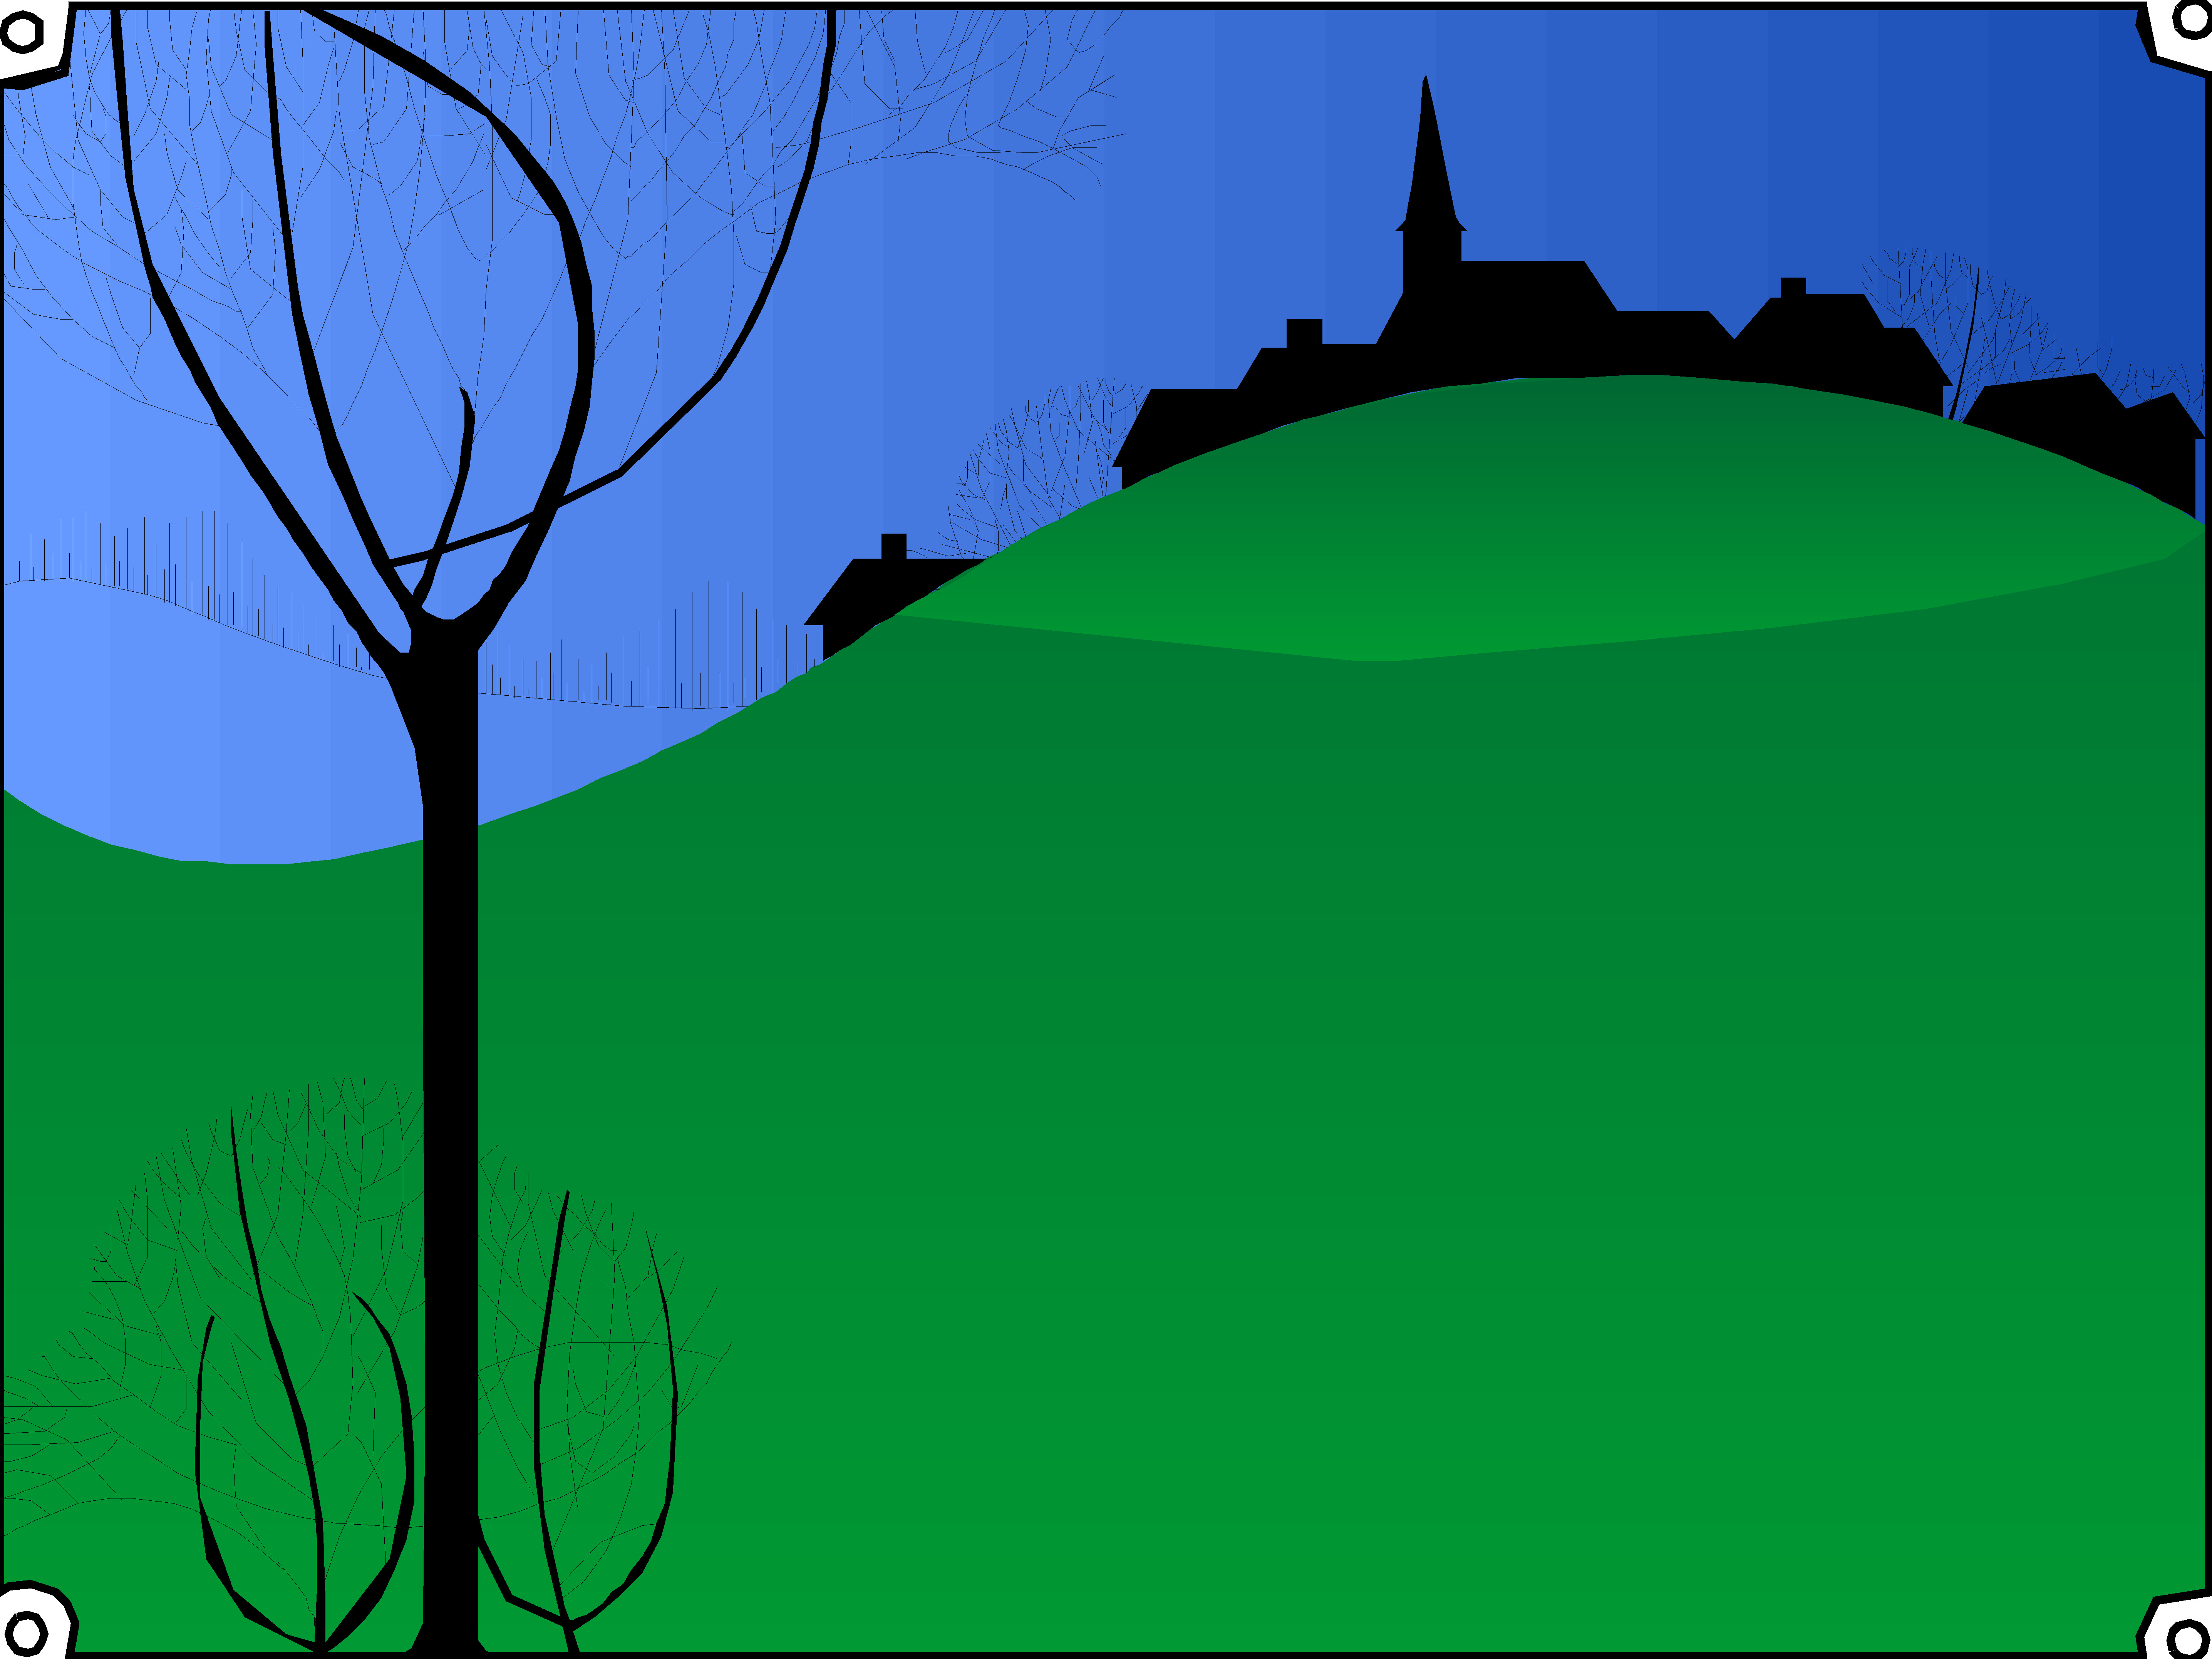 silouette-of-village-on-a-hill.